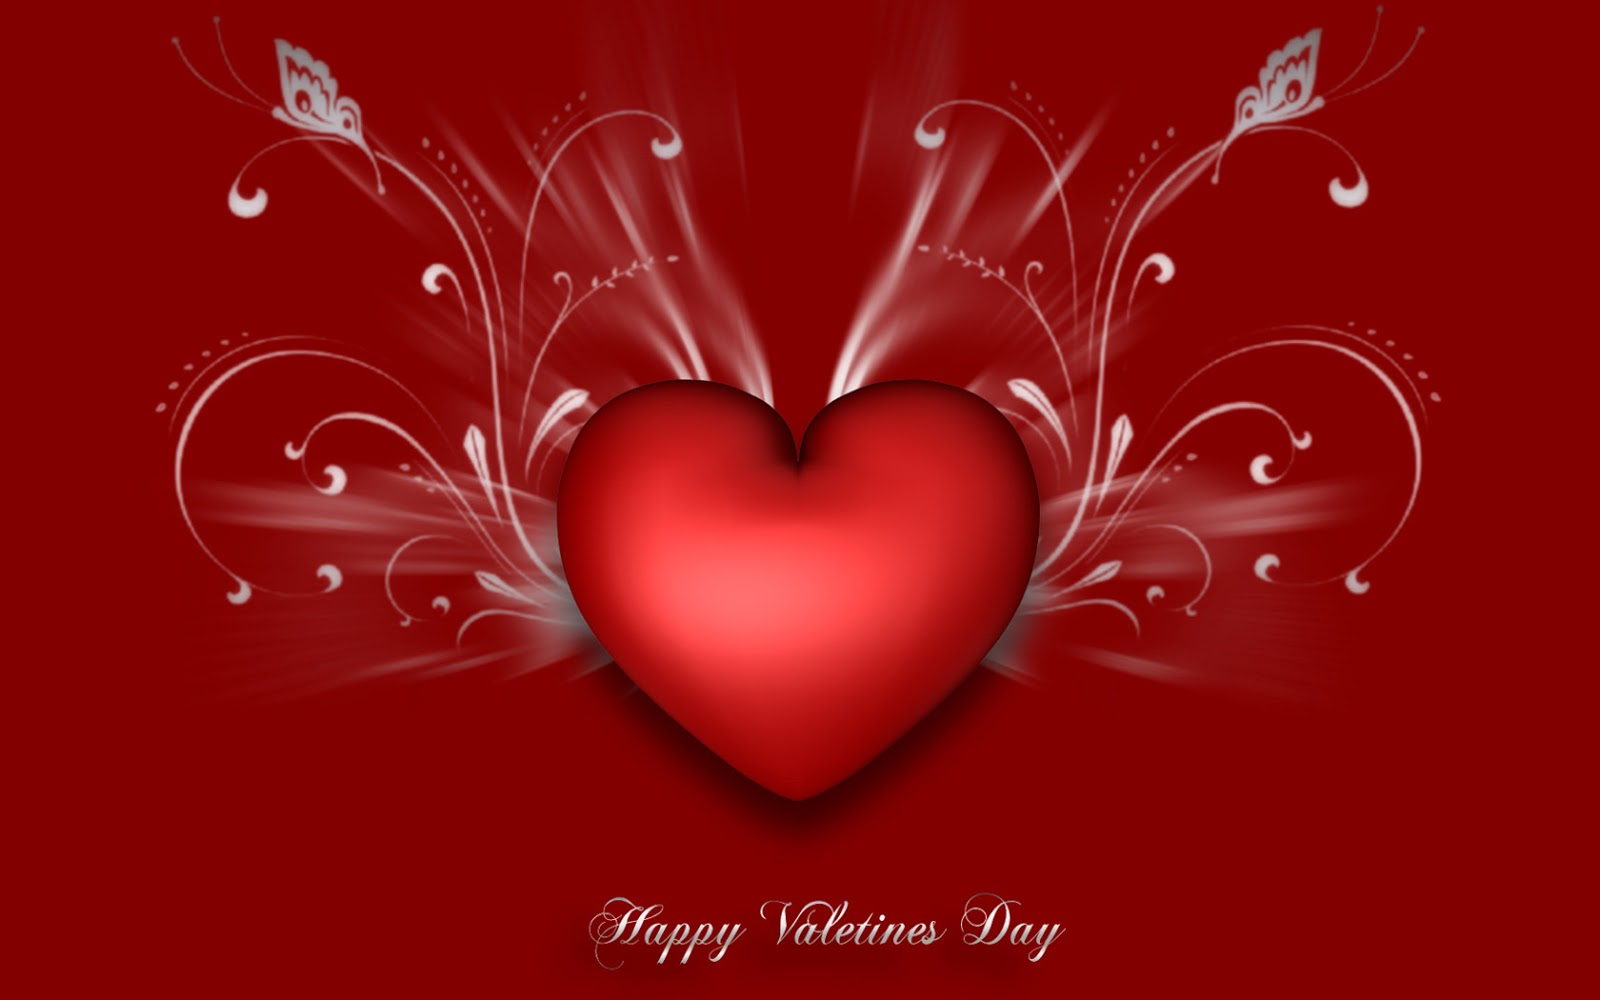 valentines+day+hearts+%25288%2529